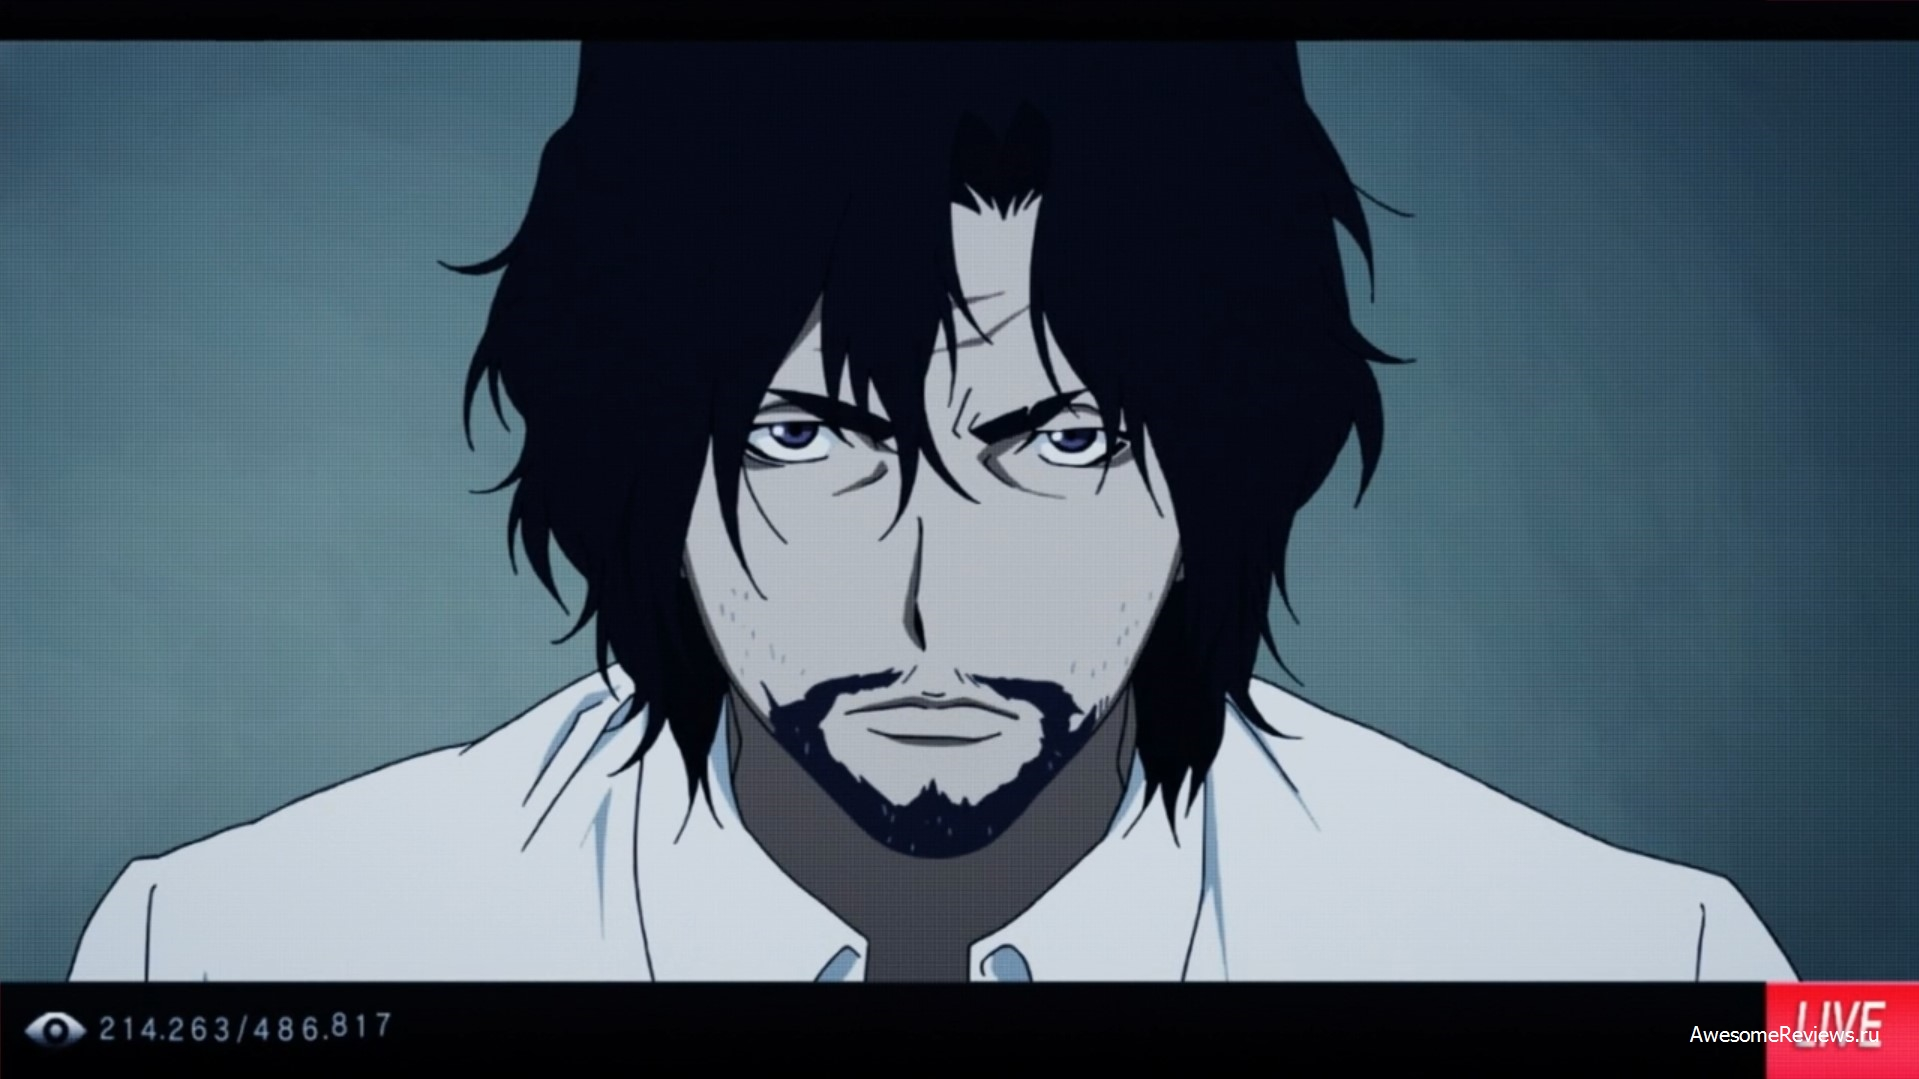 Filesize: 349 kb, twelve zankyou no terror 1999, in case you are not able to find the desired image size